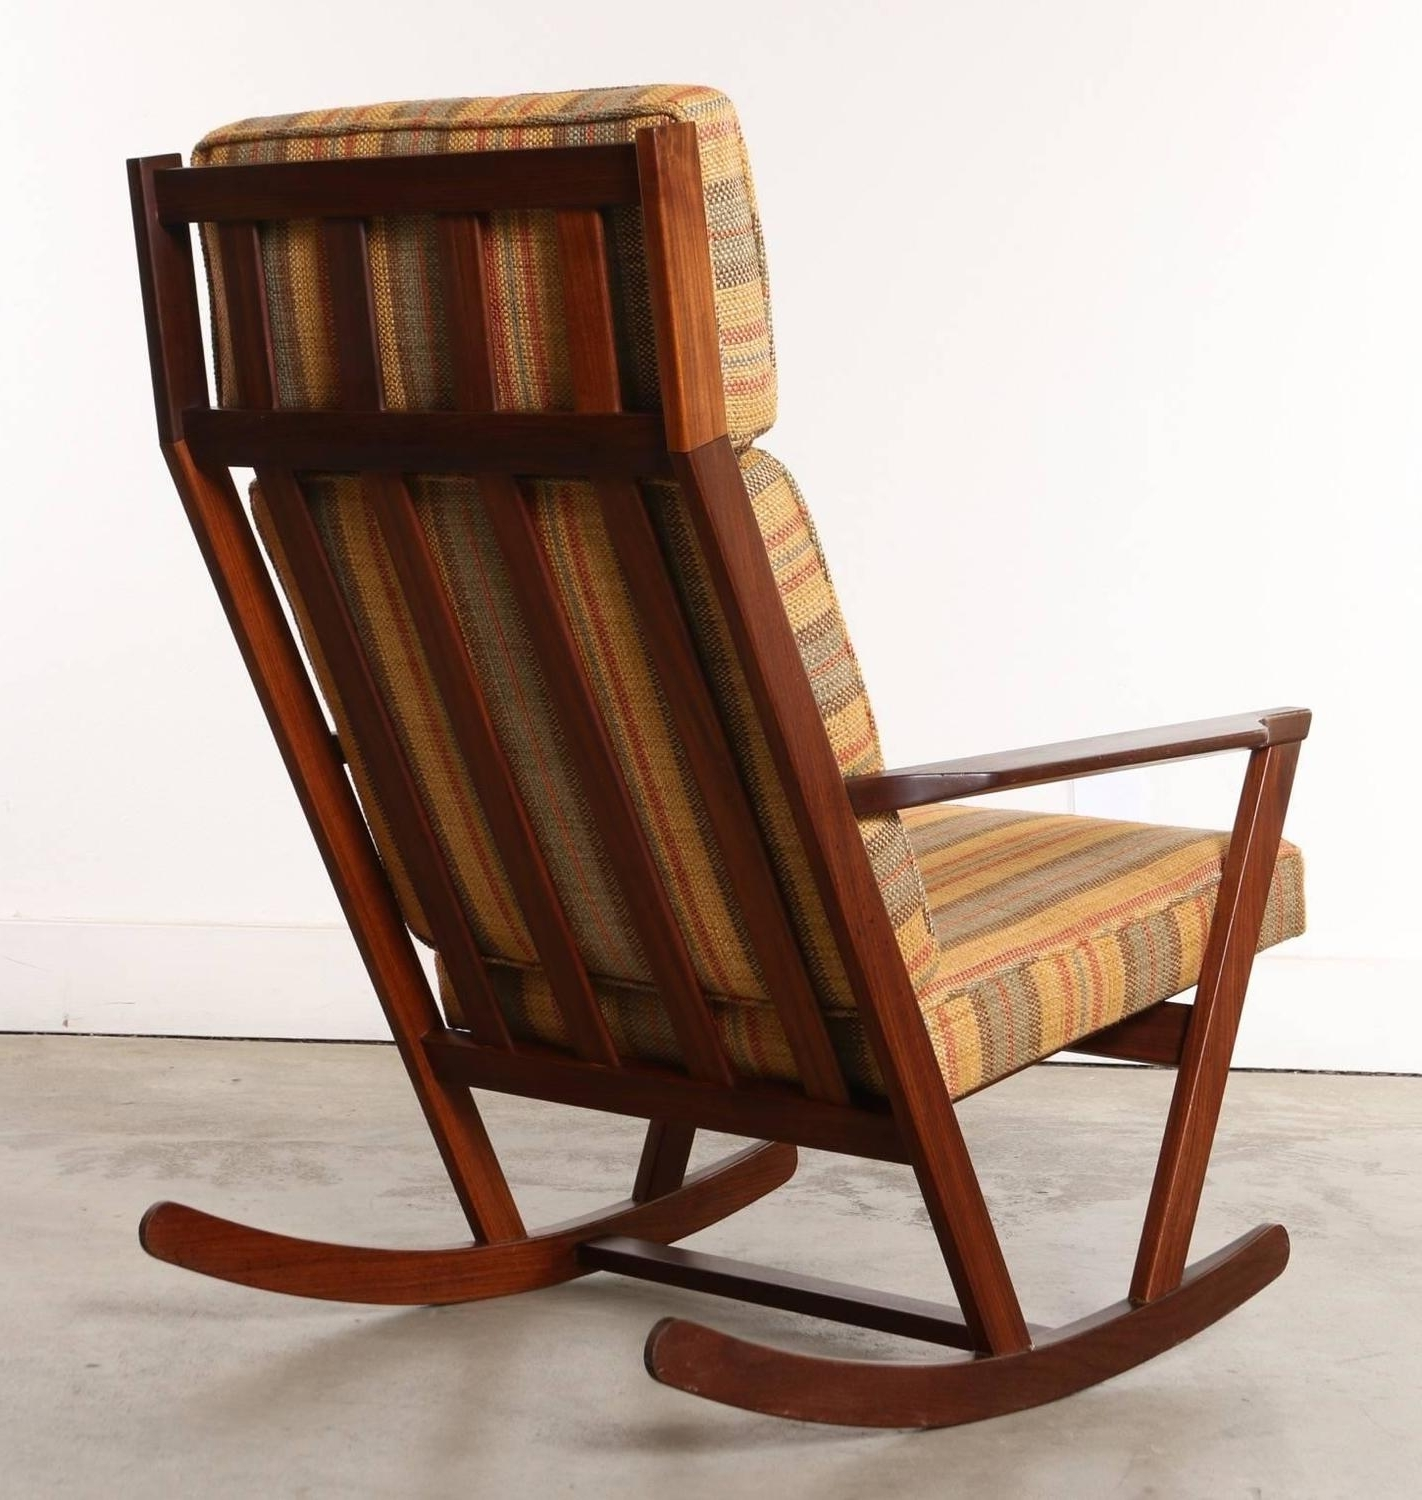 Danish Modern Wooden Rocking Chair With Cushions Designed, Danish Regarding Popular Rocking Chairs With Cushions (View 3 of 20)